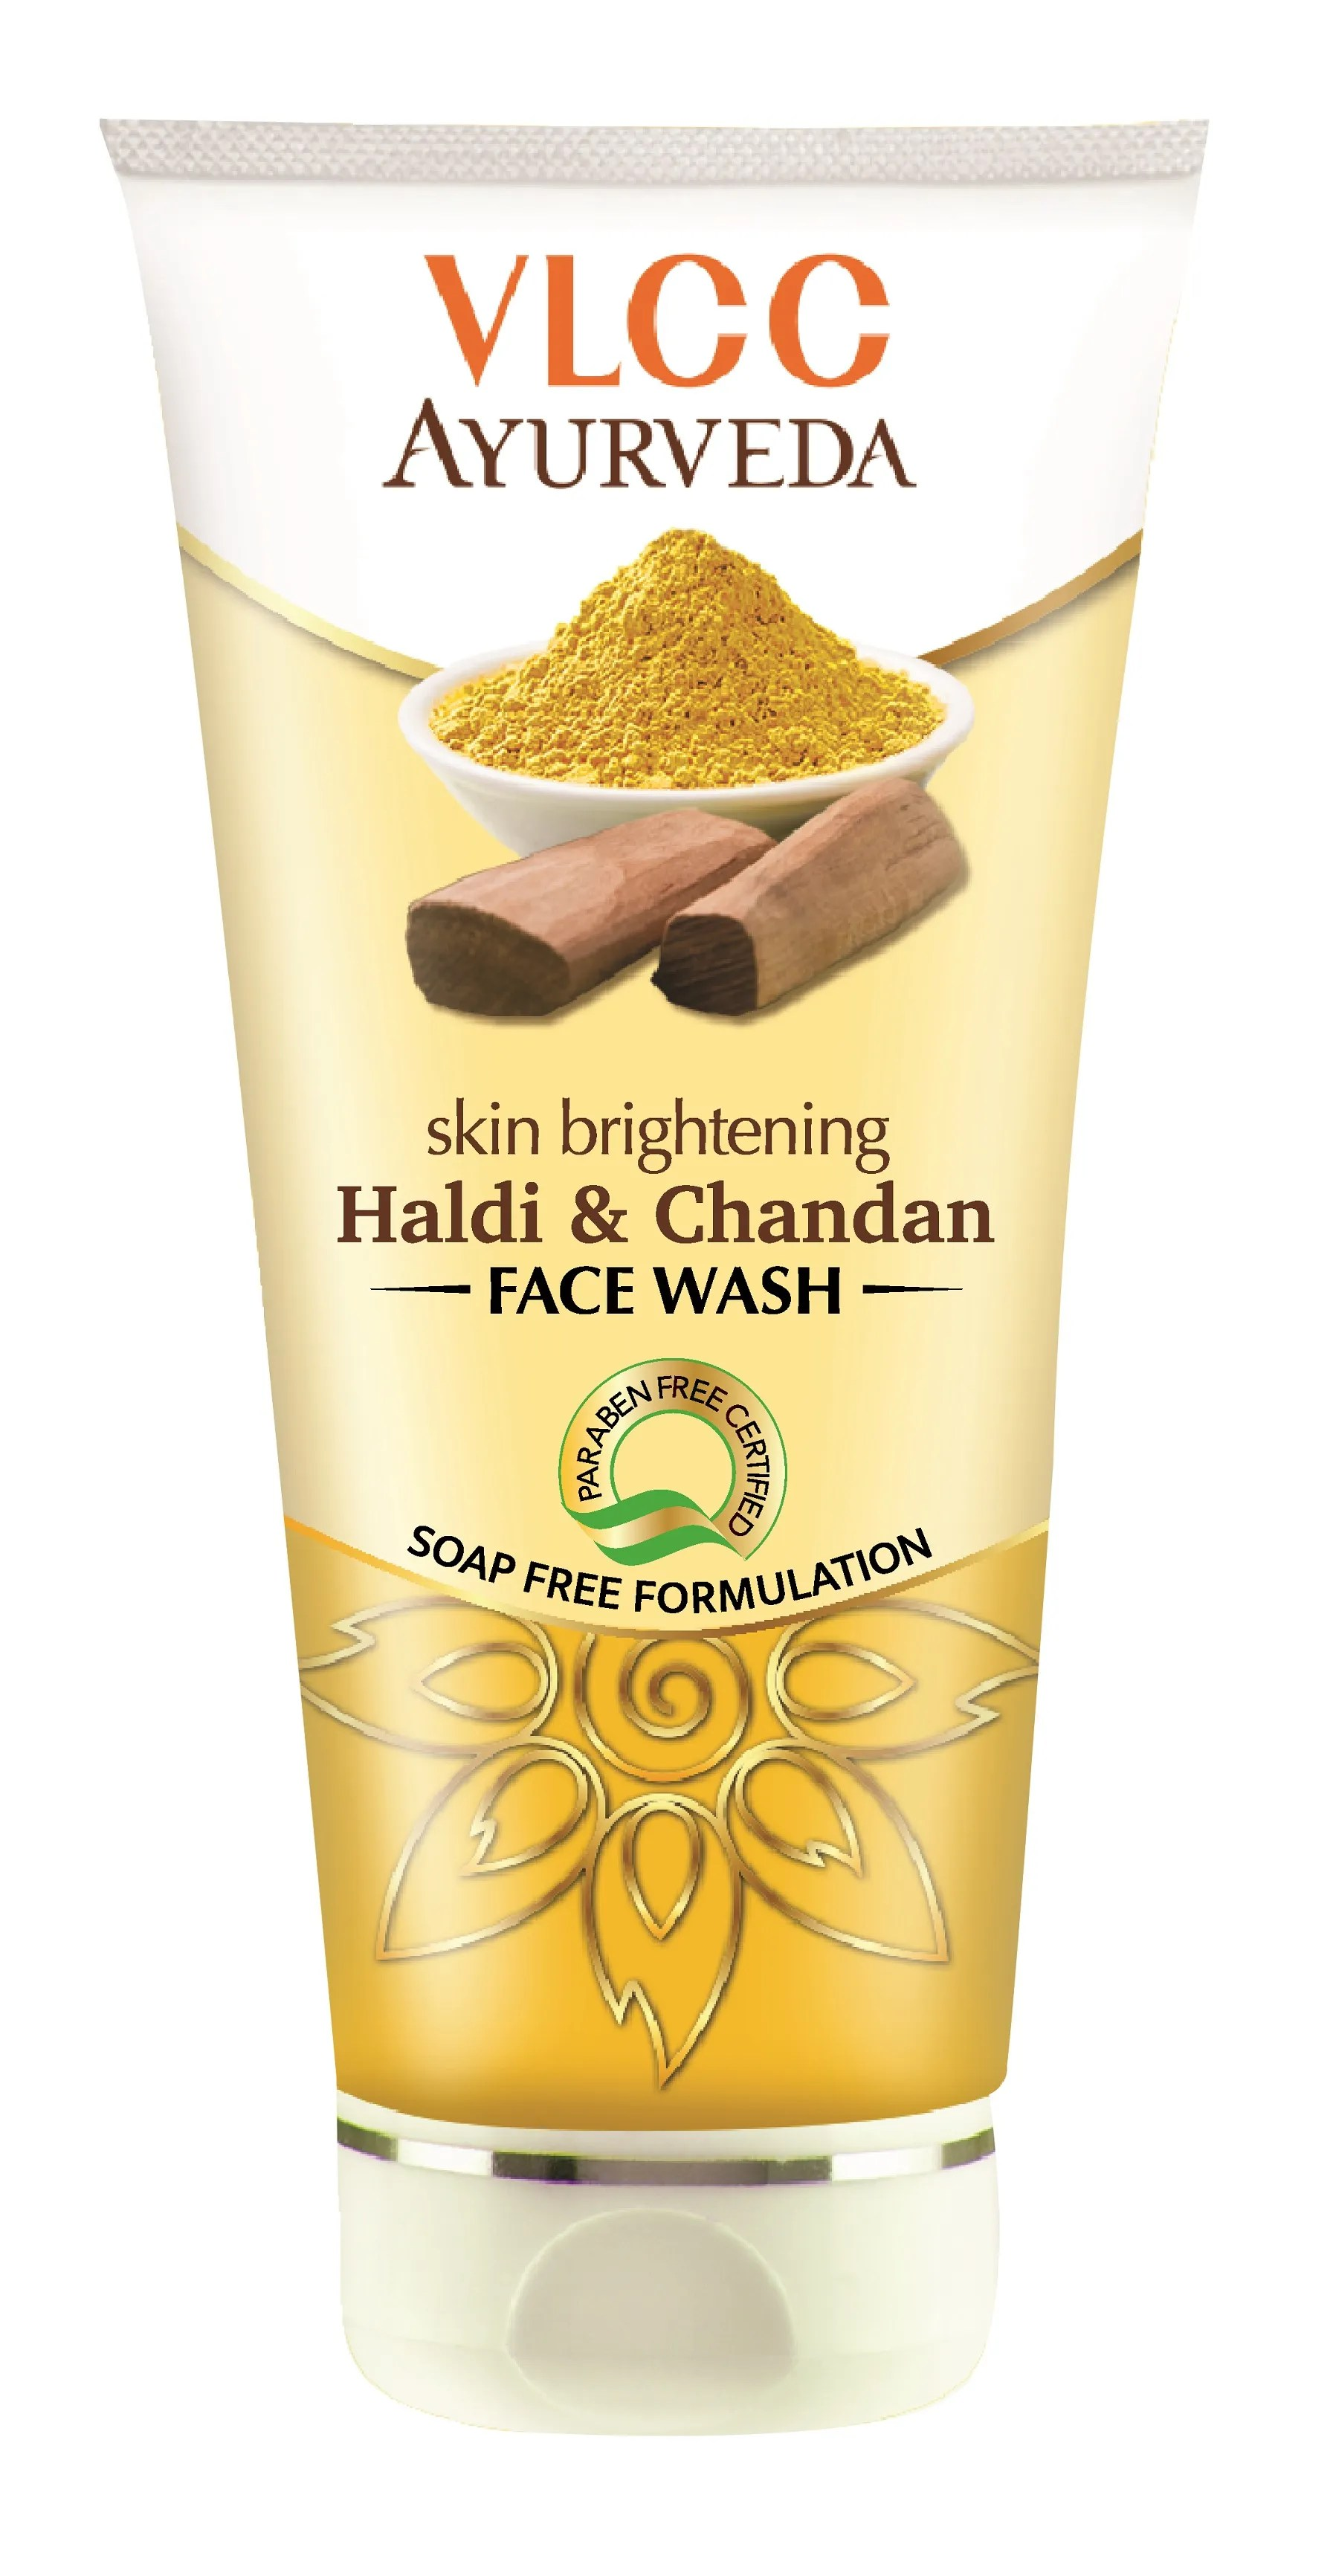 Arte Boutique Ibi Buy Vlcc Ayurveda Skin Brightening Haldi Chandan Face Wash At